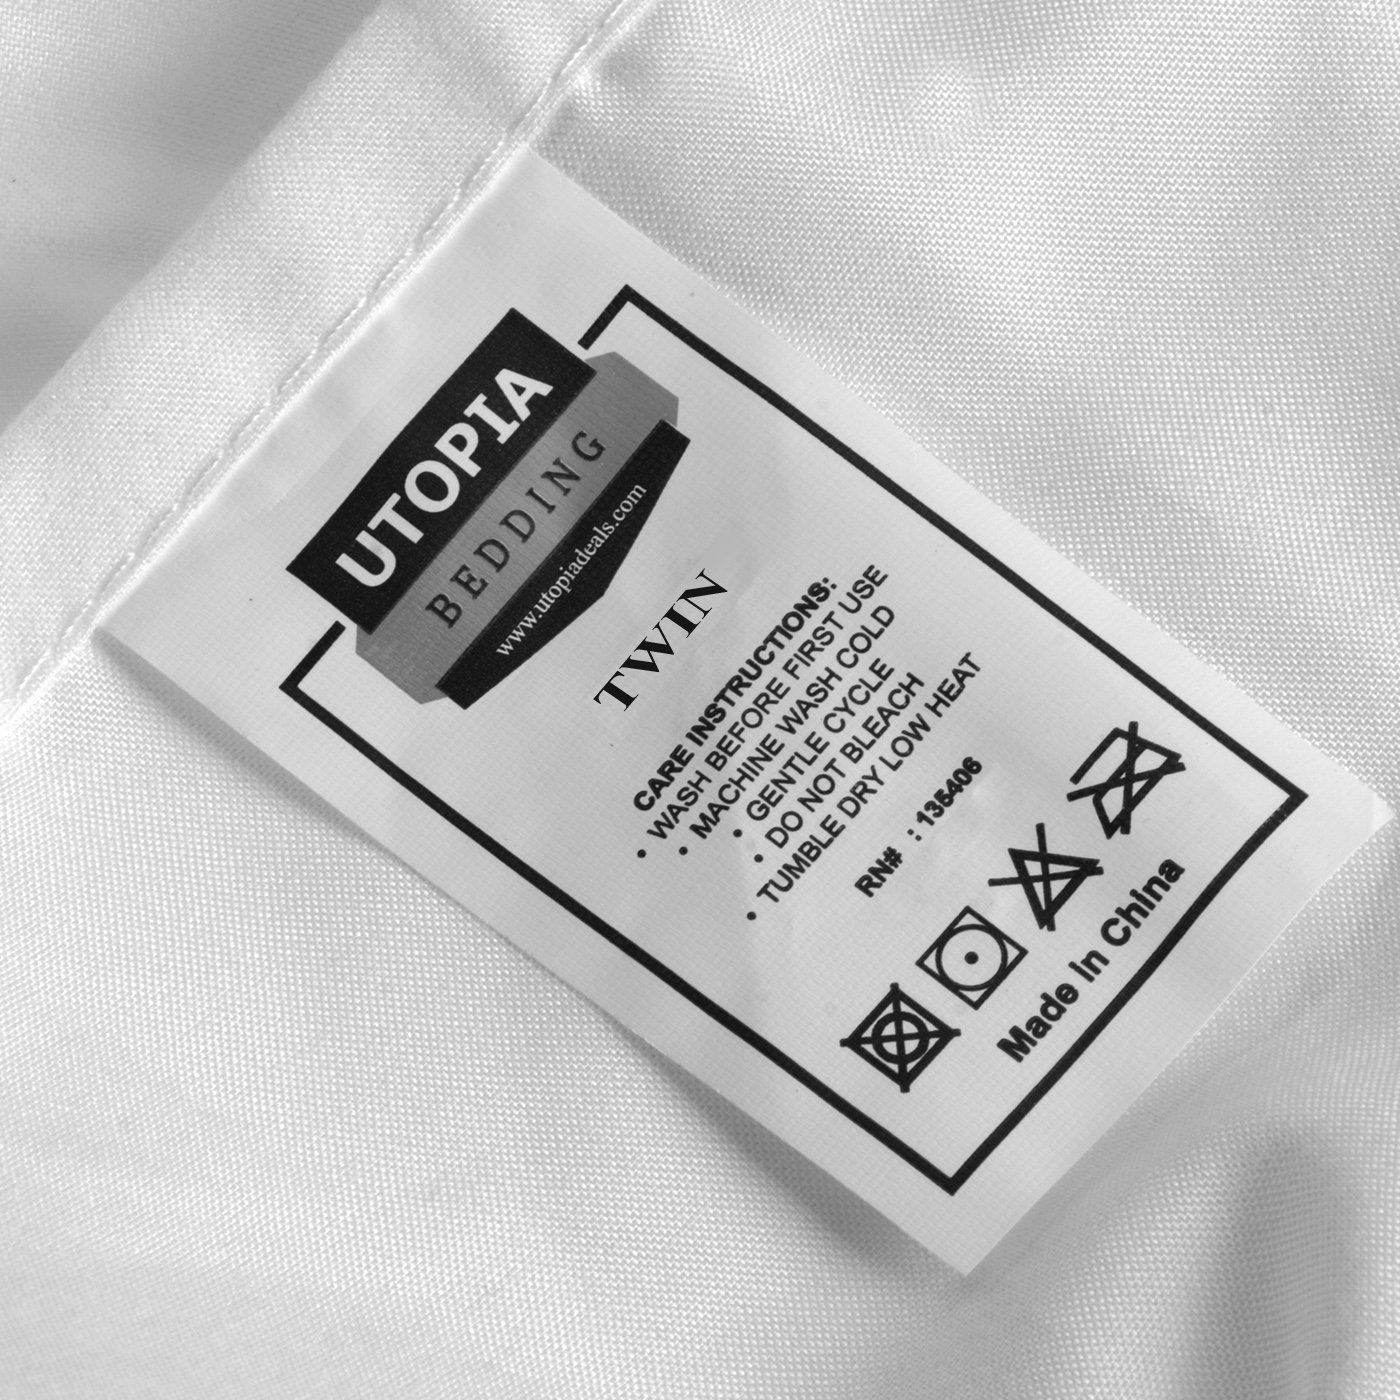 Utopia Bedding Fitted Sheet (Pack of 6, Twin, White) Deep Pocket Brushed Microfiber, Breathable, Soft and Comfortable - Wrinkle, Fade, Stain and Abrasion Resistant - Hotel Quality - Durable